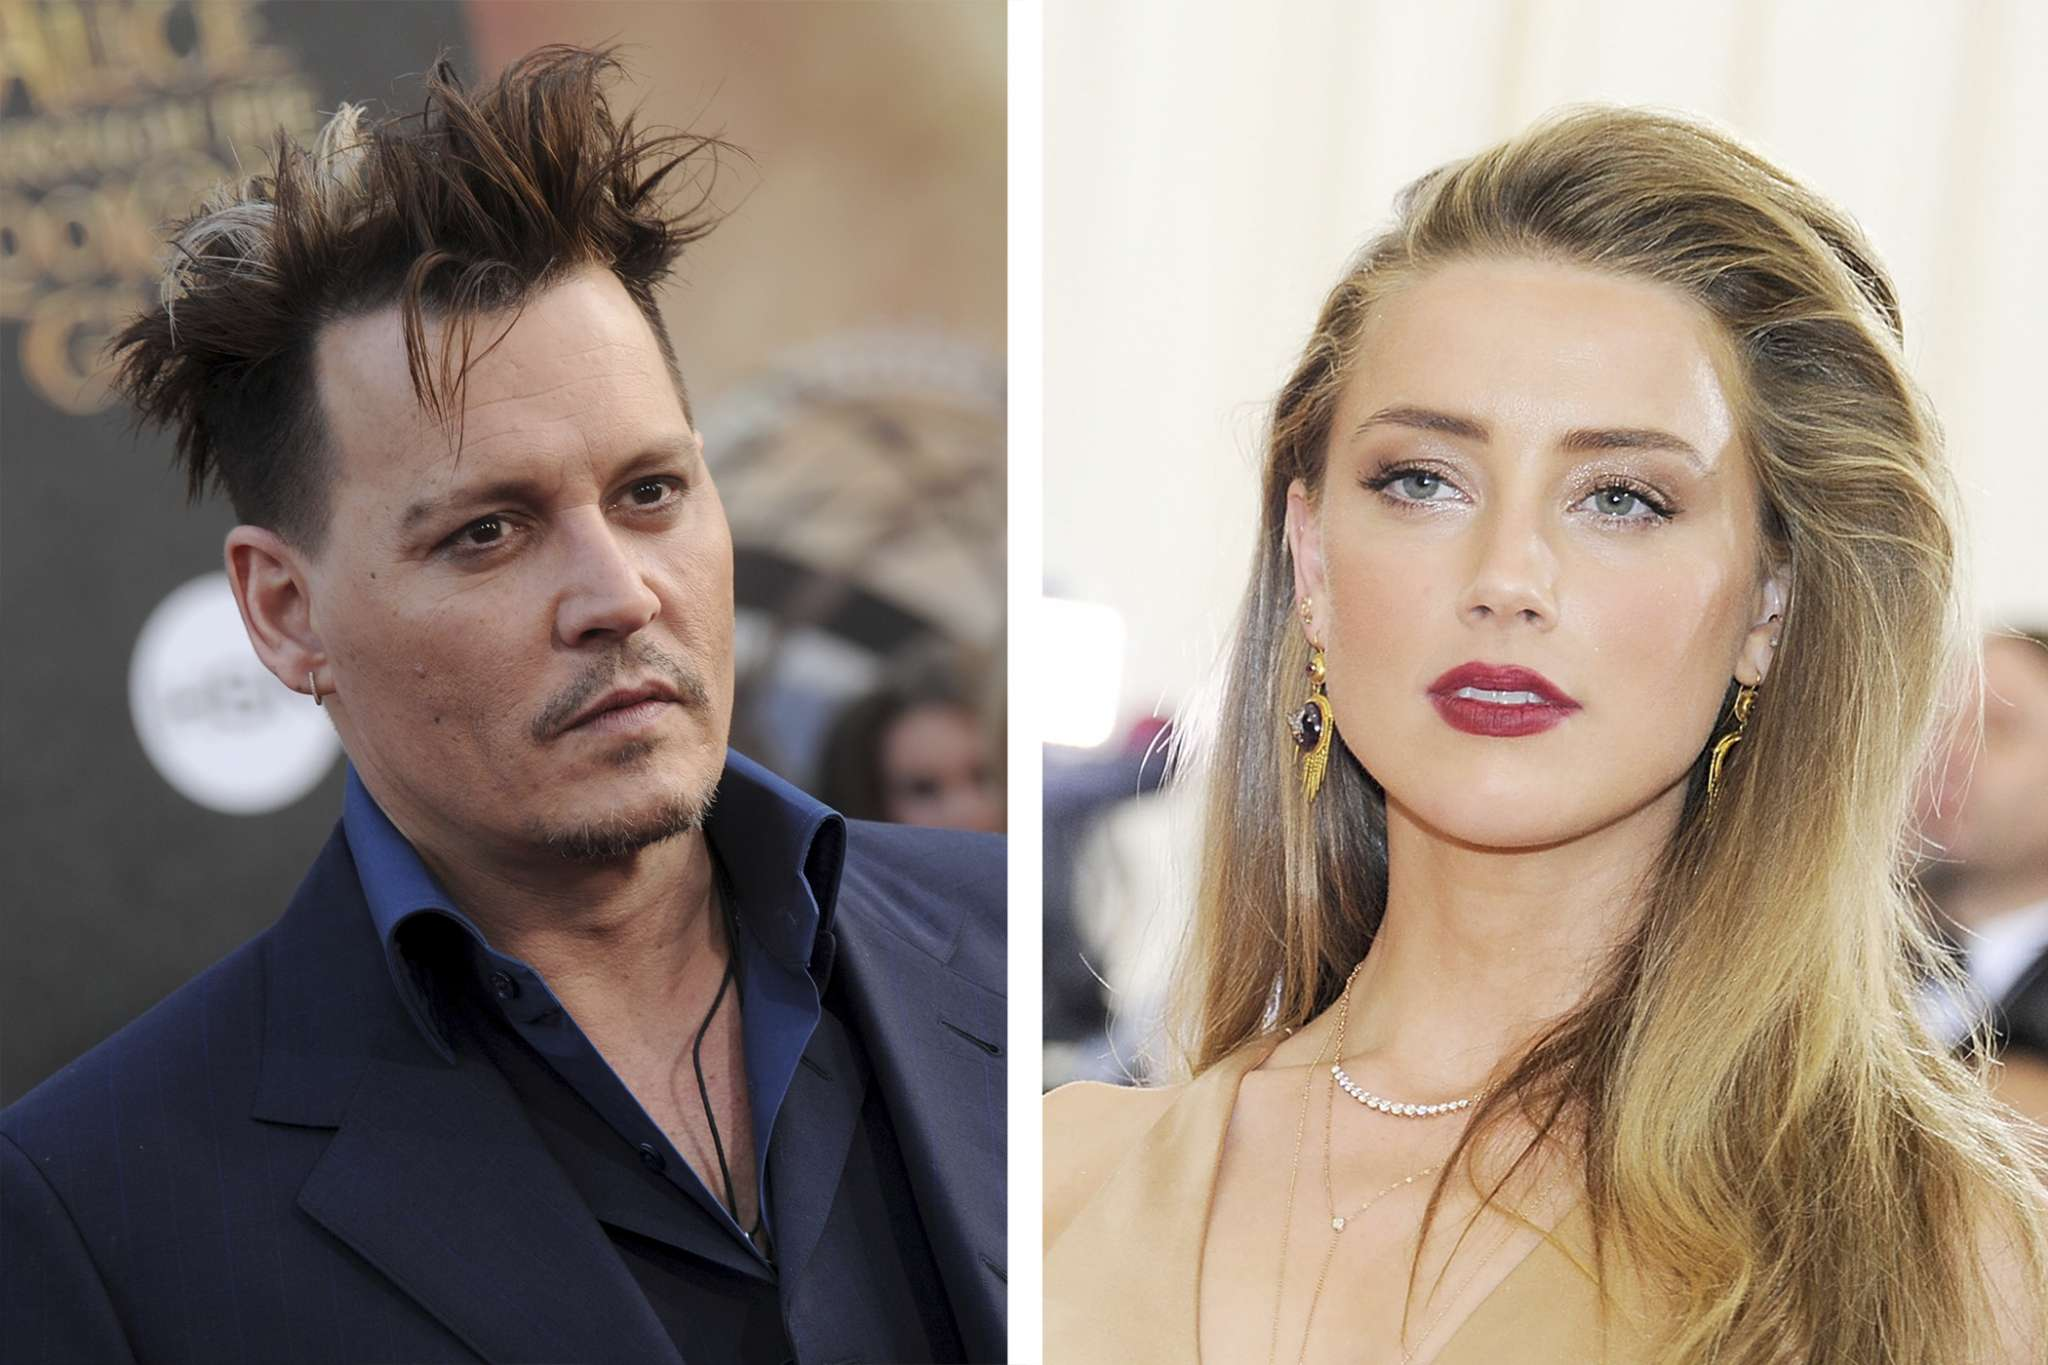 johnny-depp-vs-amber-heard-the-actor-will-not-rest-until-his-reputation-is-restored